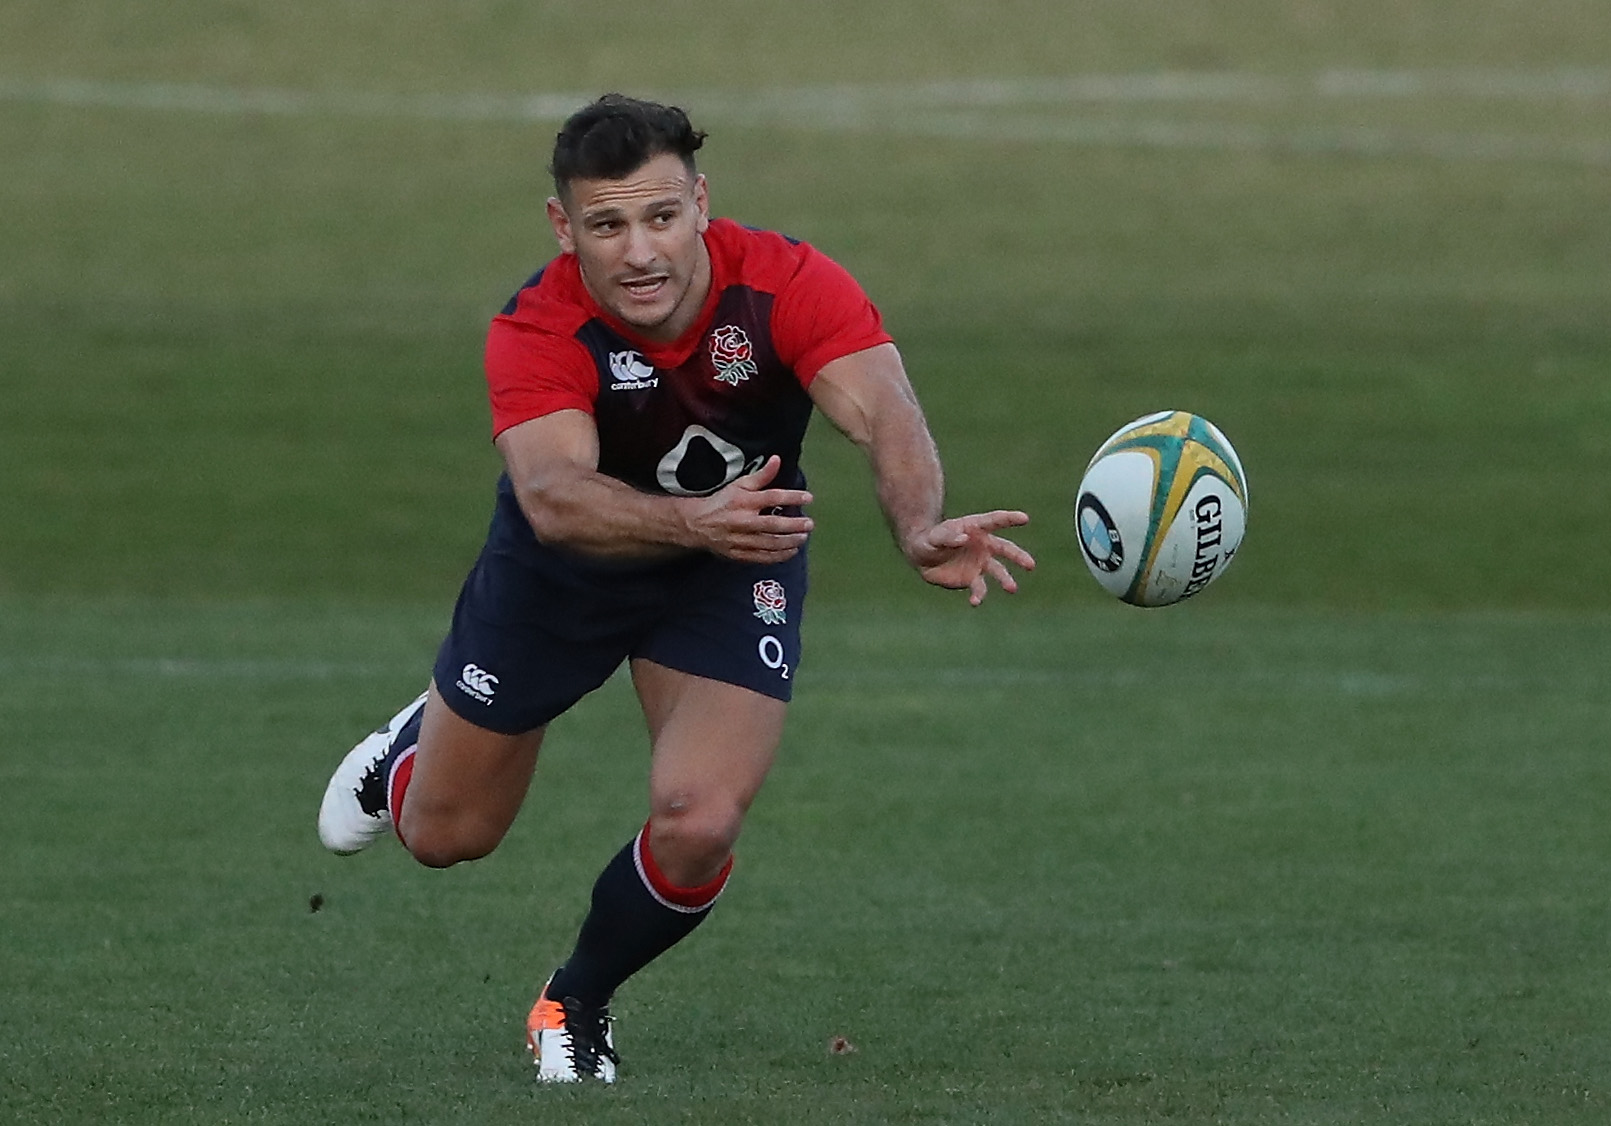 England scrum-half Danny Care looking to make it third time lucky for Lions